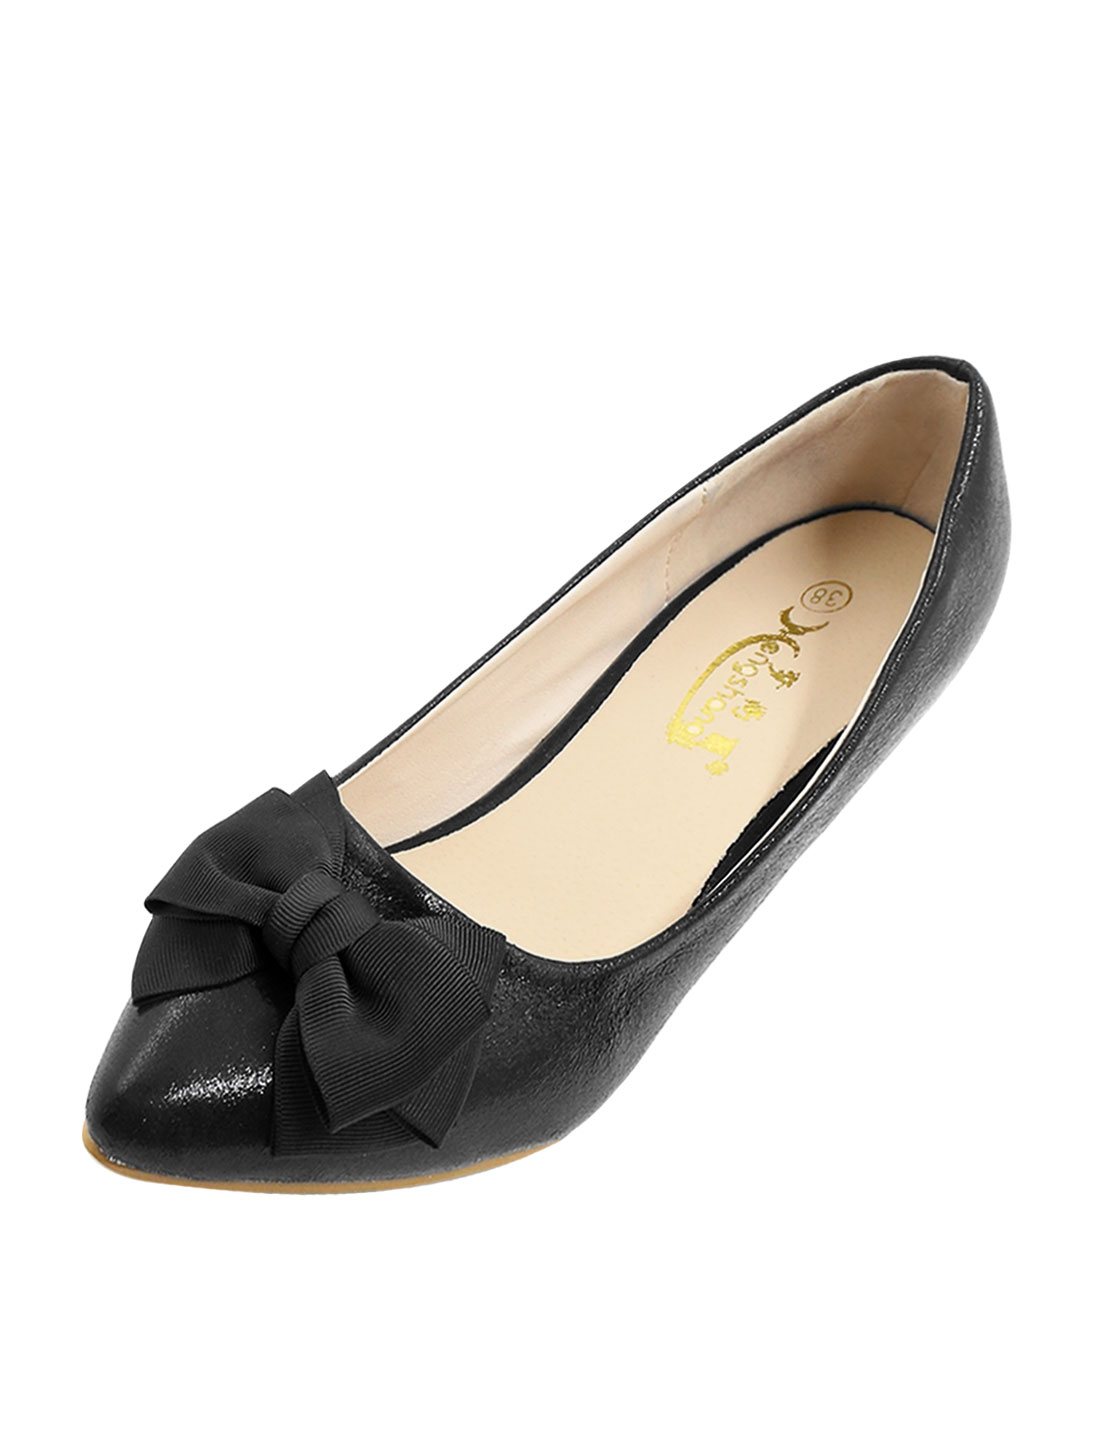 Ladies Bowknot Decor Shiny Casual Low Heel Pumps Black US 8